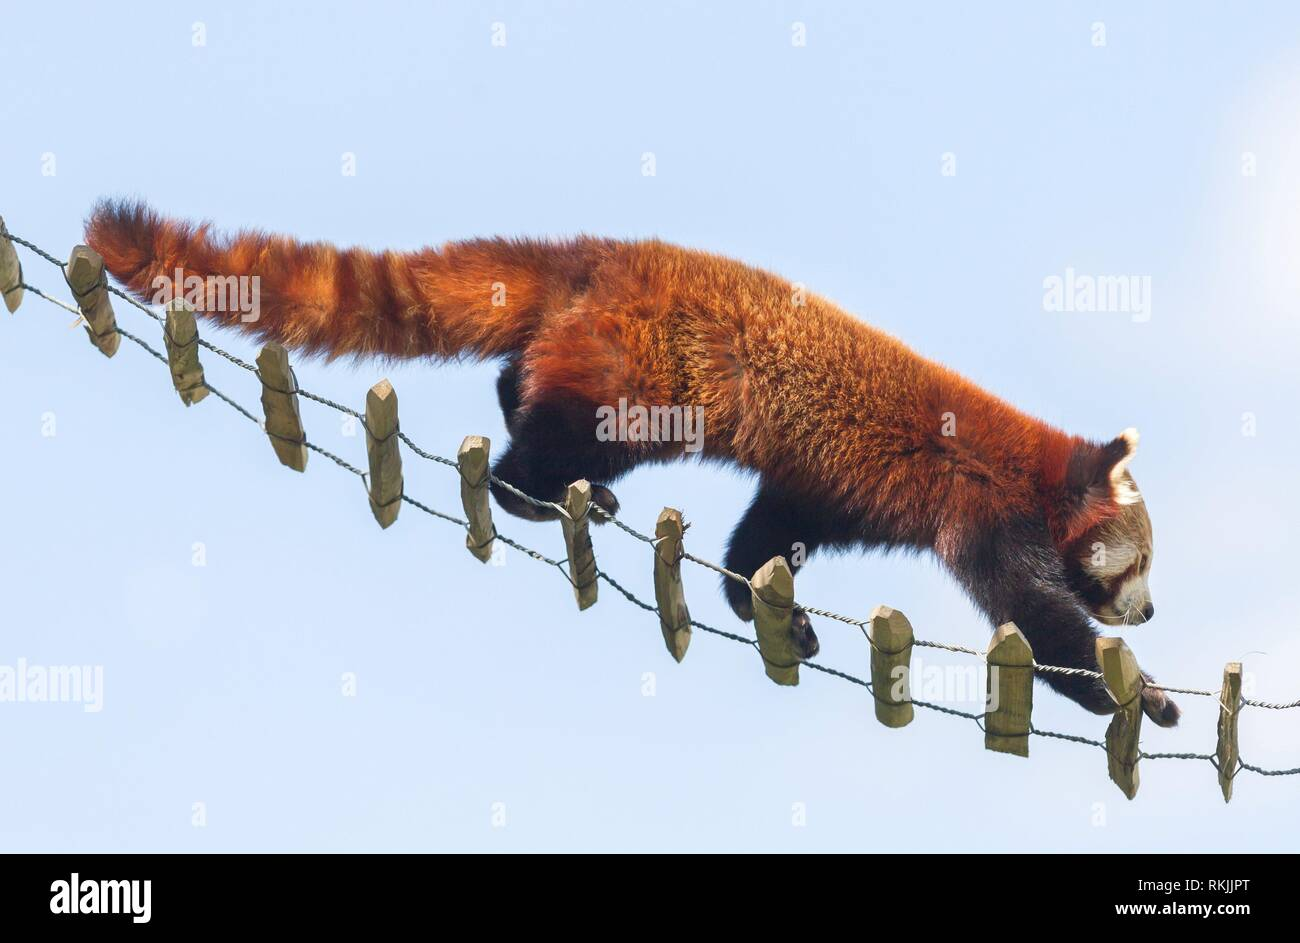 Red panda high up in the trees - Awake. - Stock Image